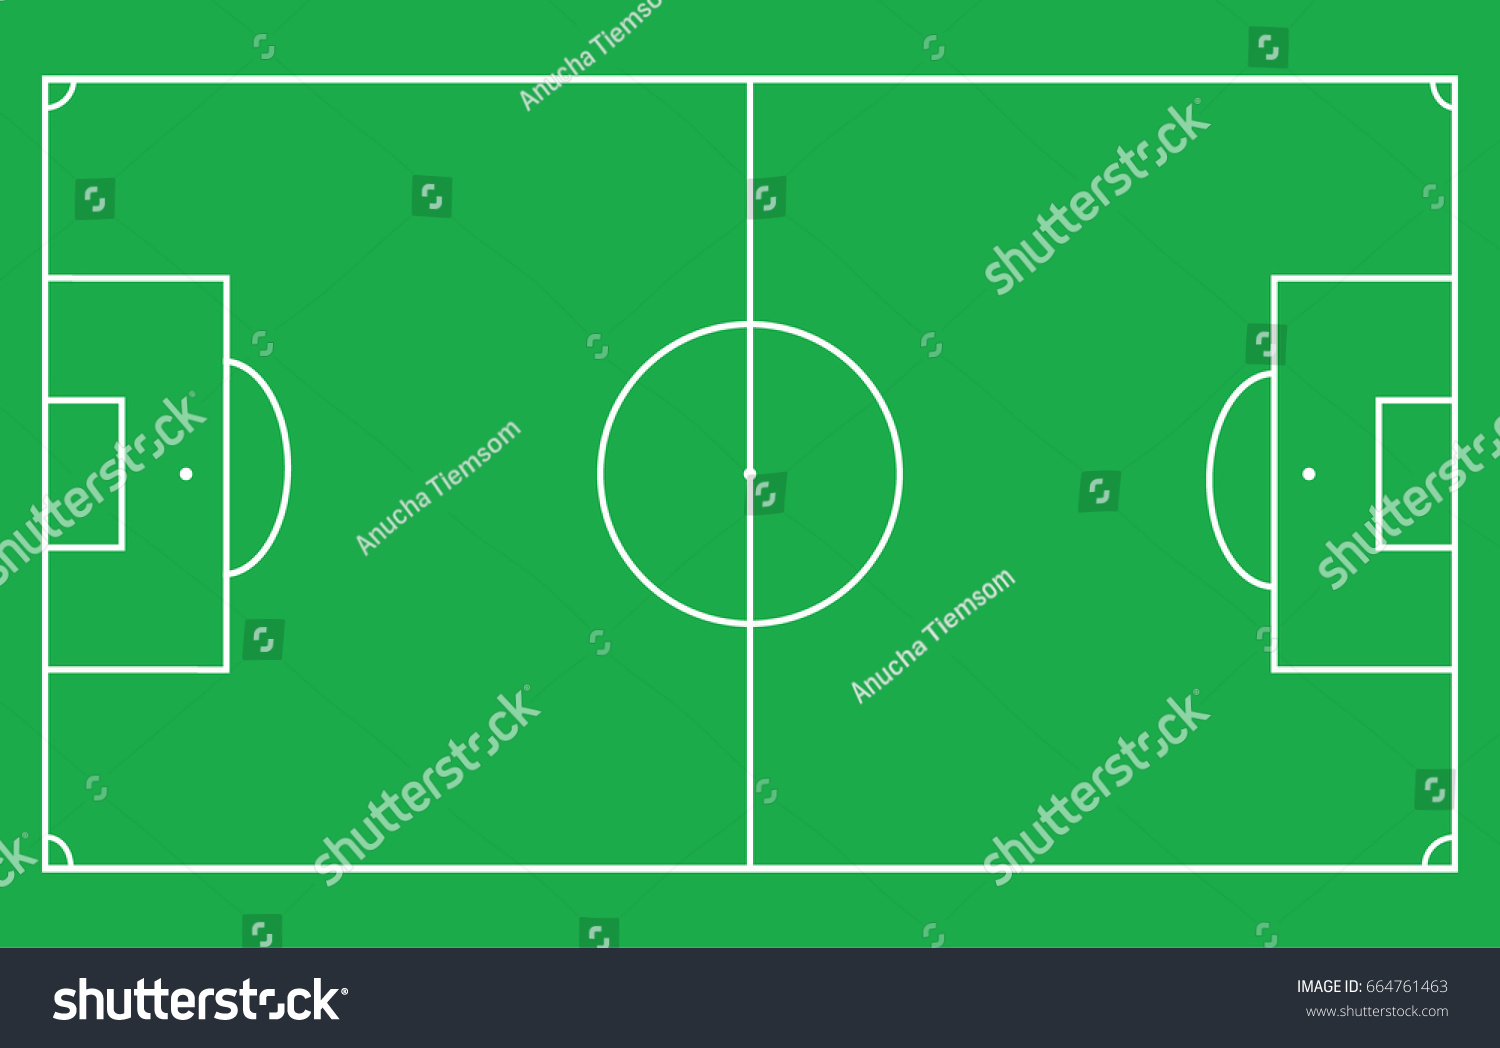 Flat green field football grass soccer field with line template id 664761463 maxwellsz